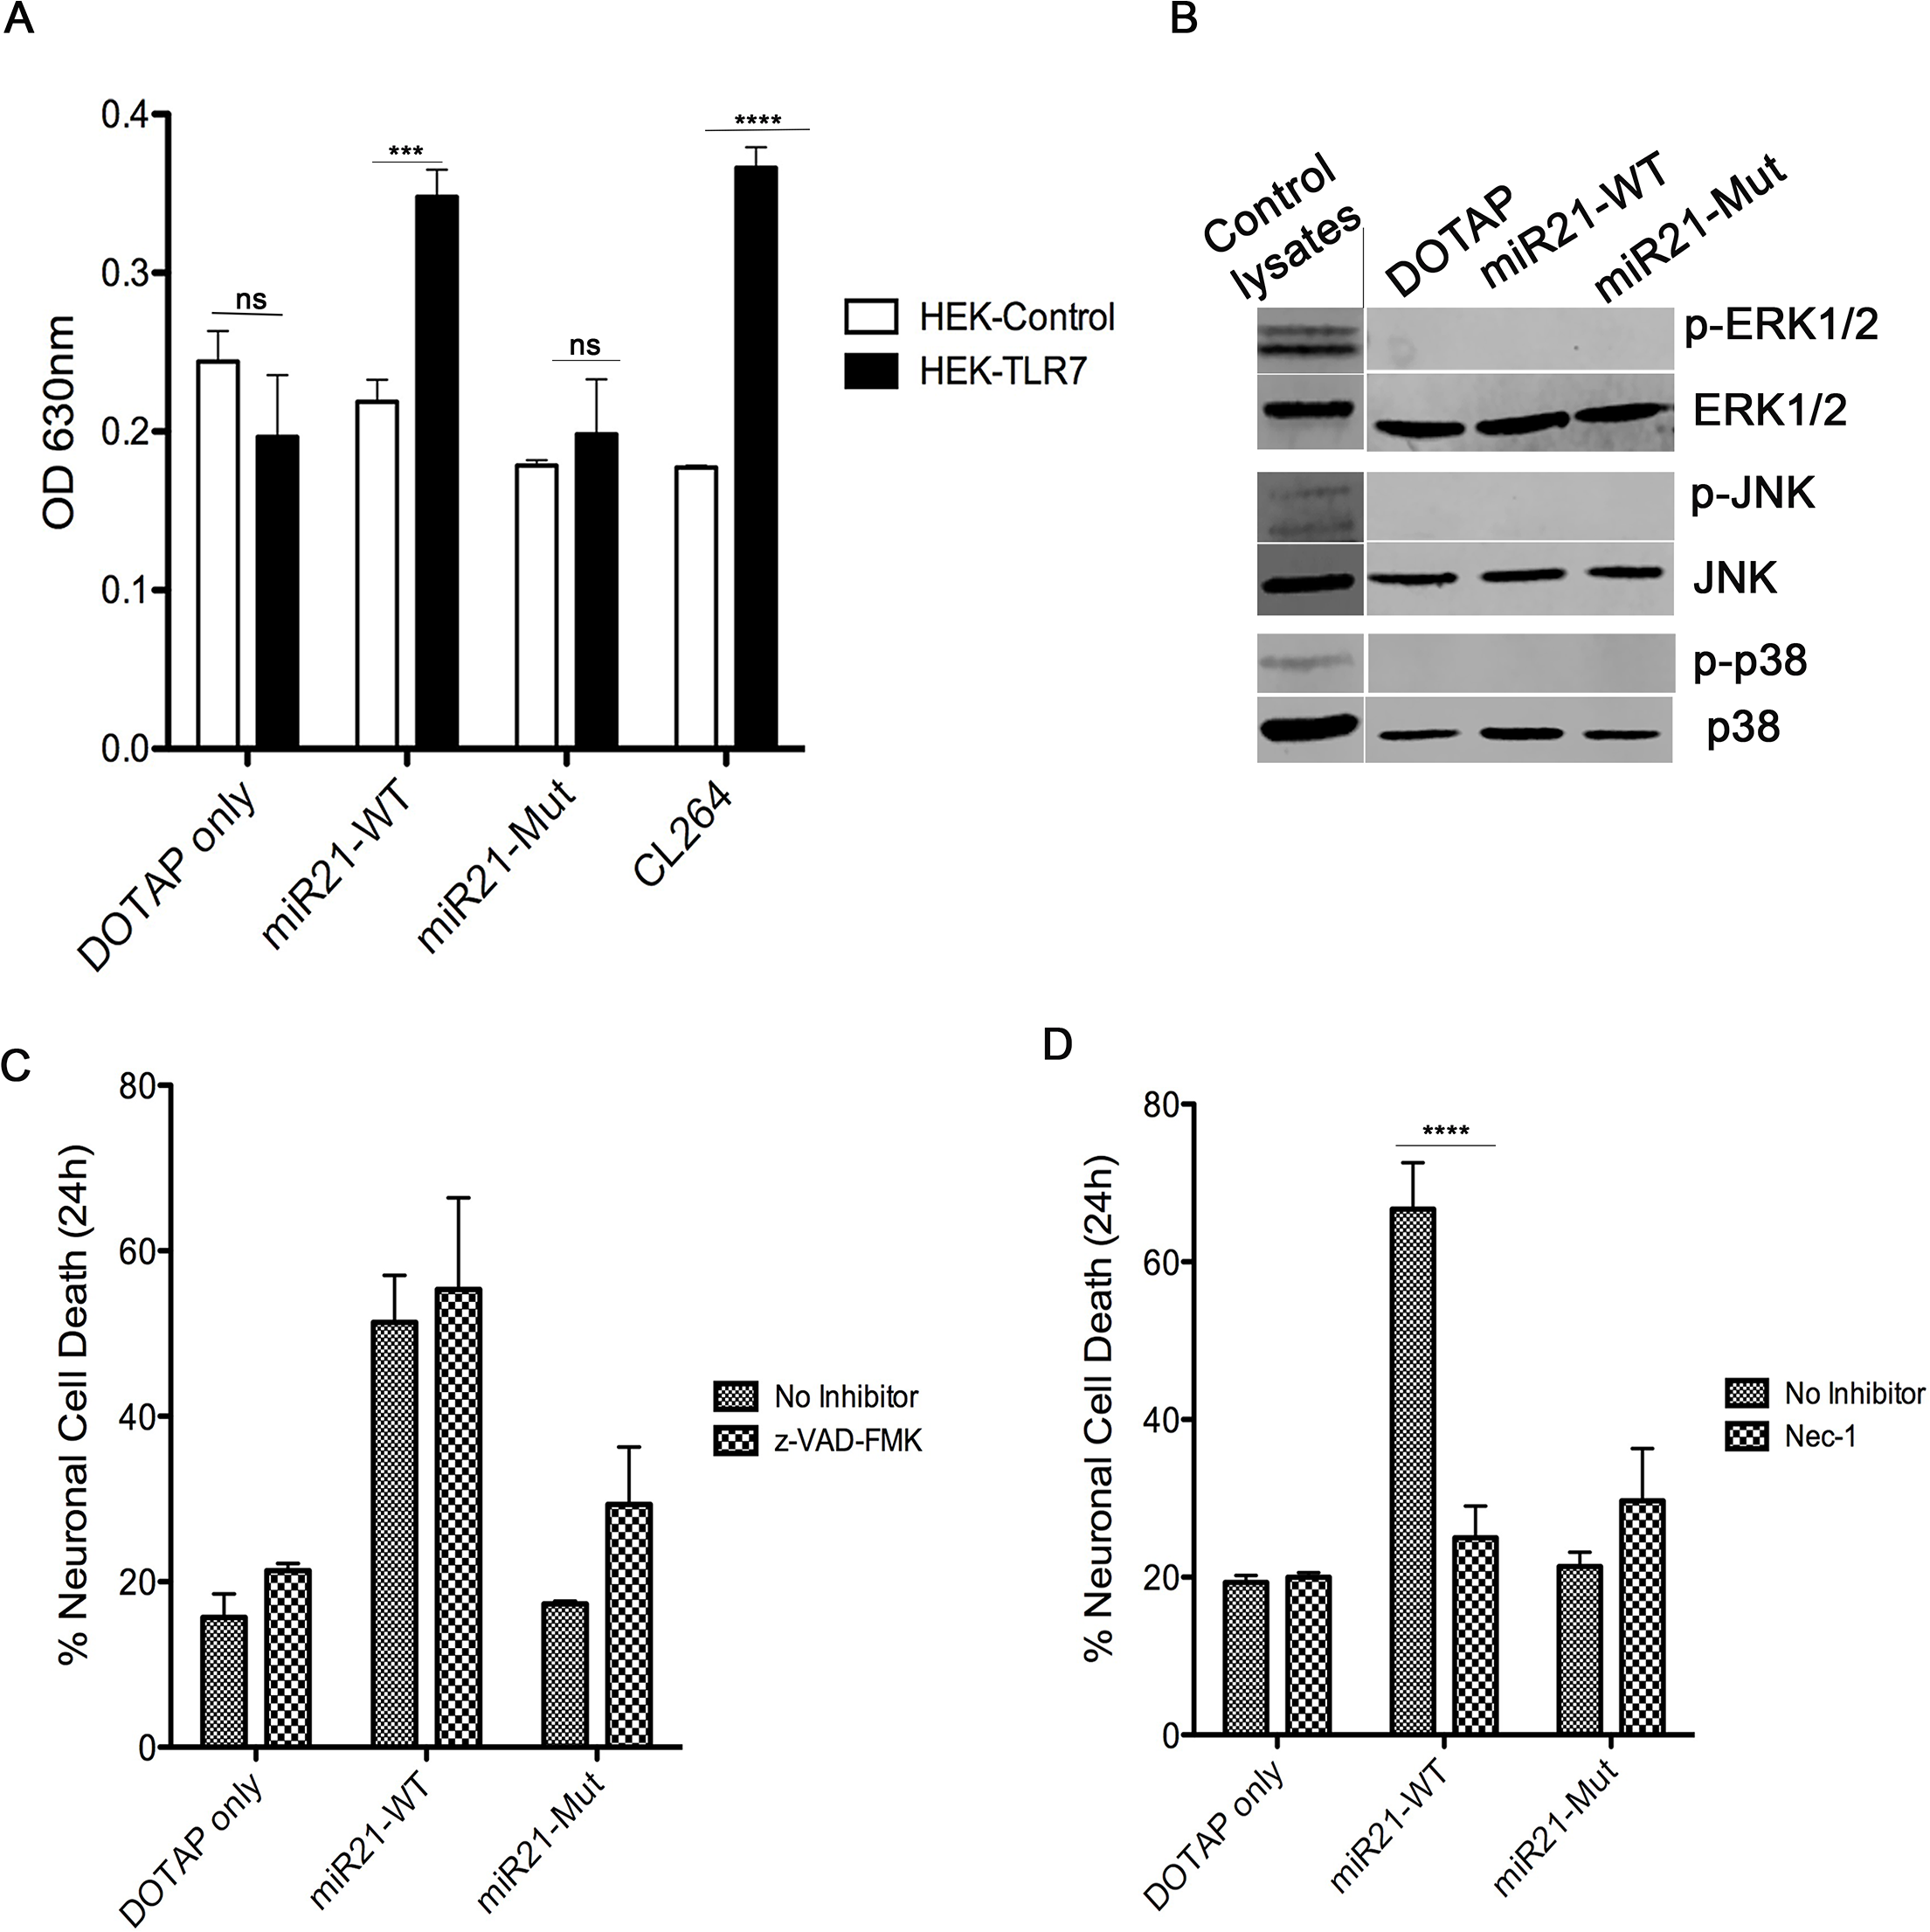 miR-21 neurotoxicity is rescued by Nec-1, a necroptosis inhibitor.